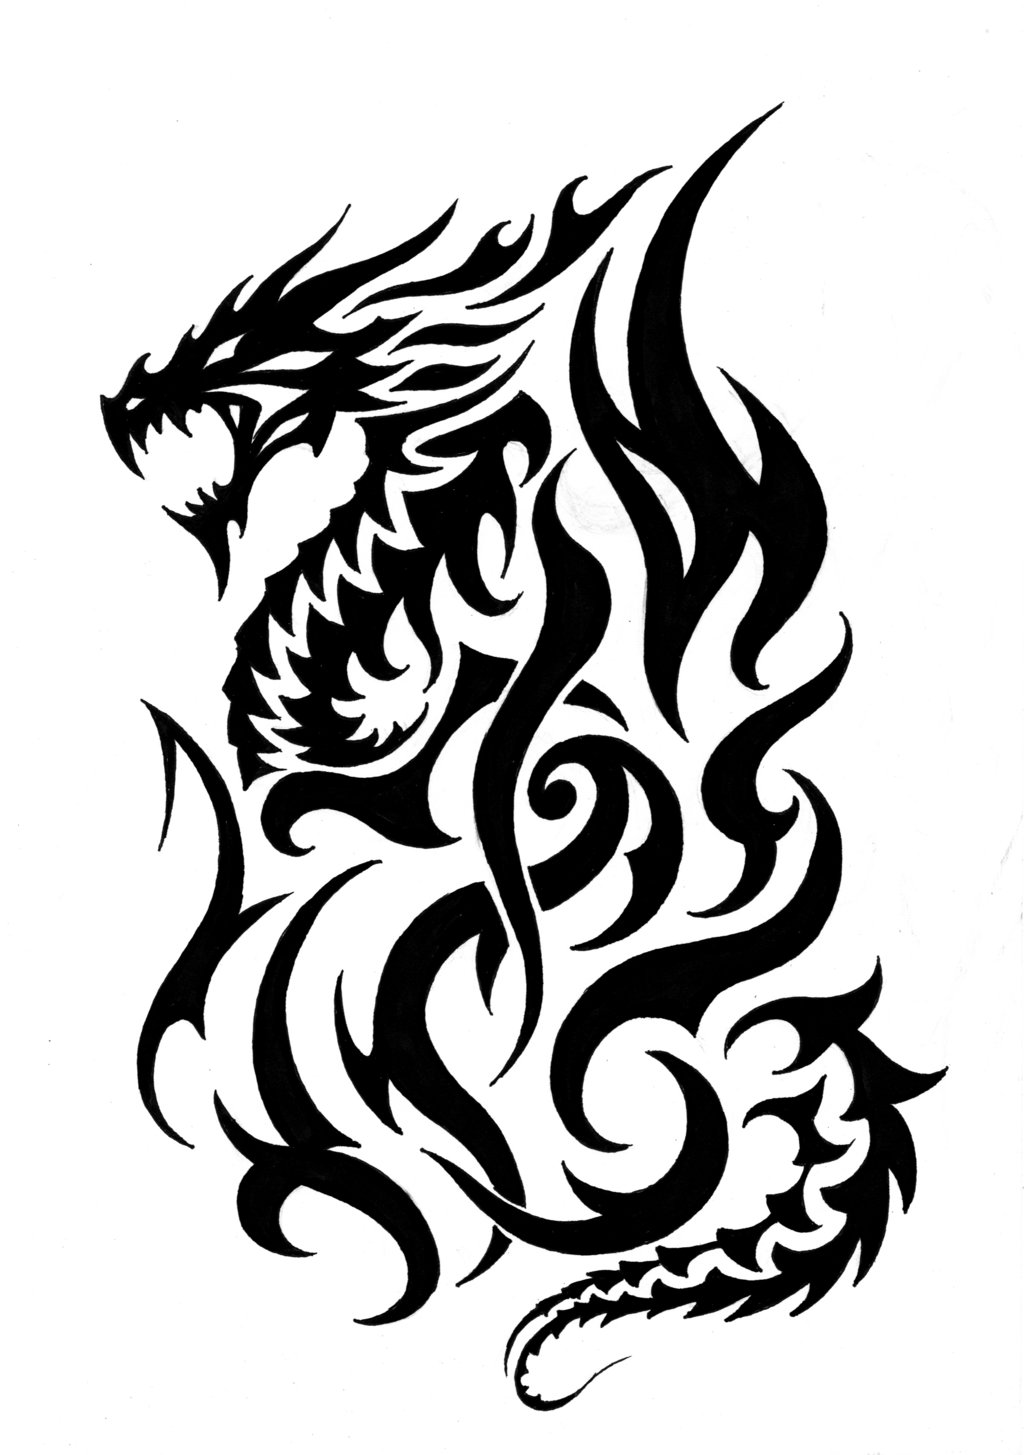 Free Fire Breathing Dragon Tattoos Download Free Clip Art